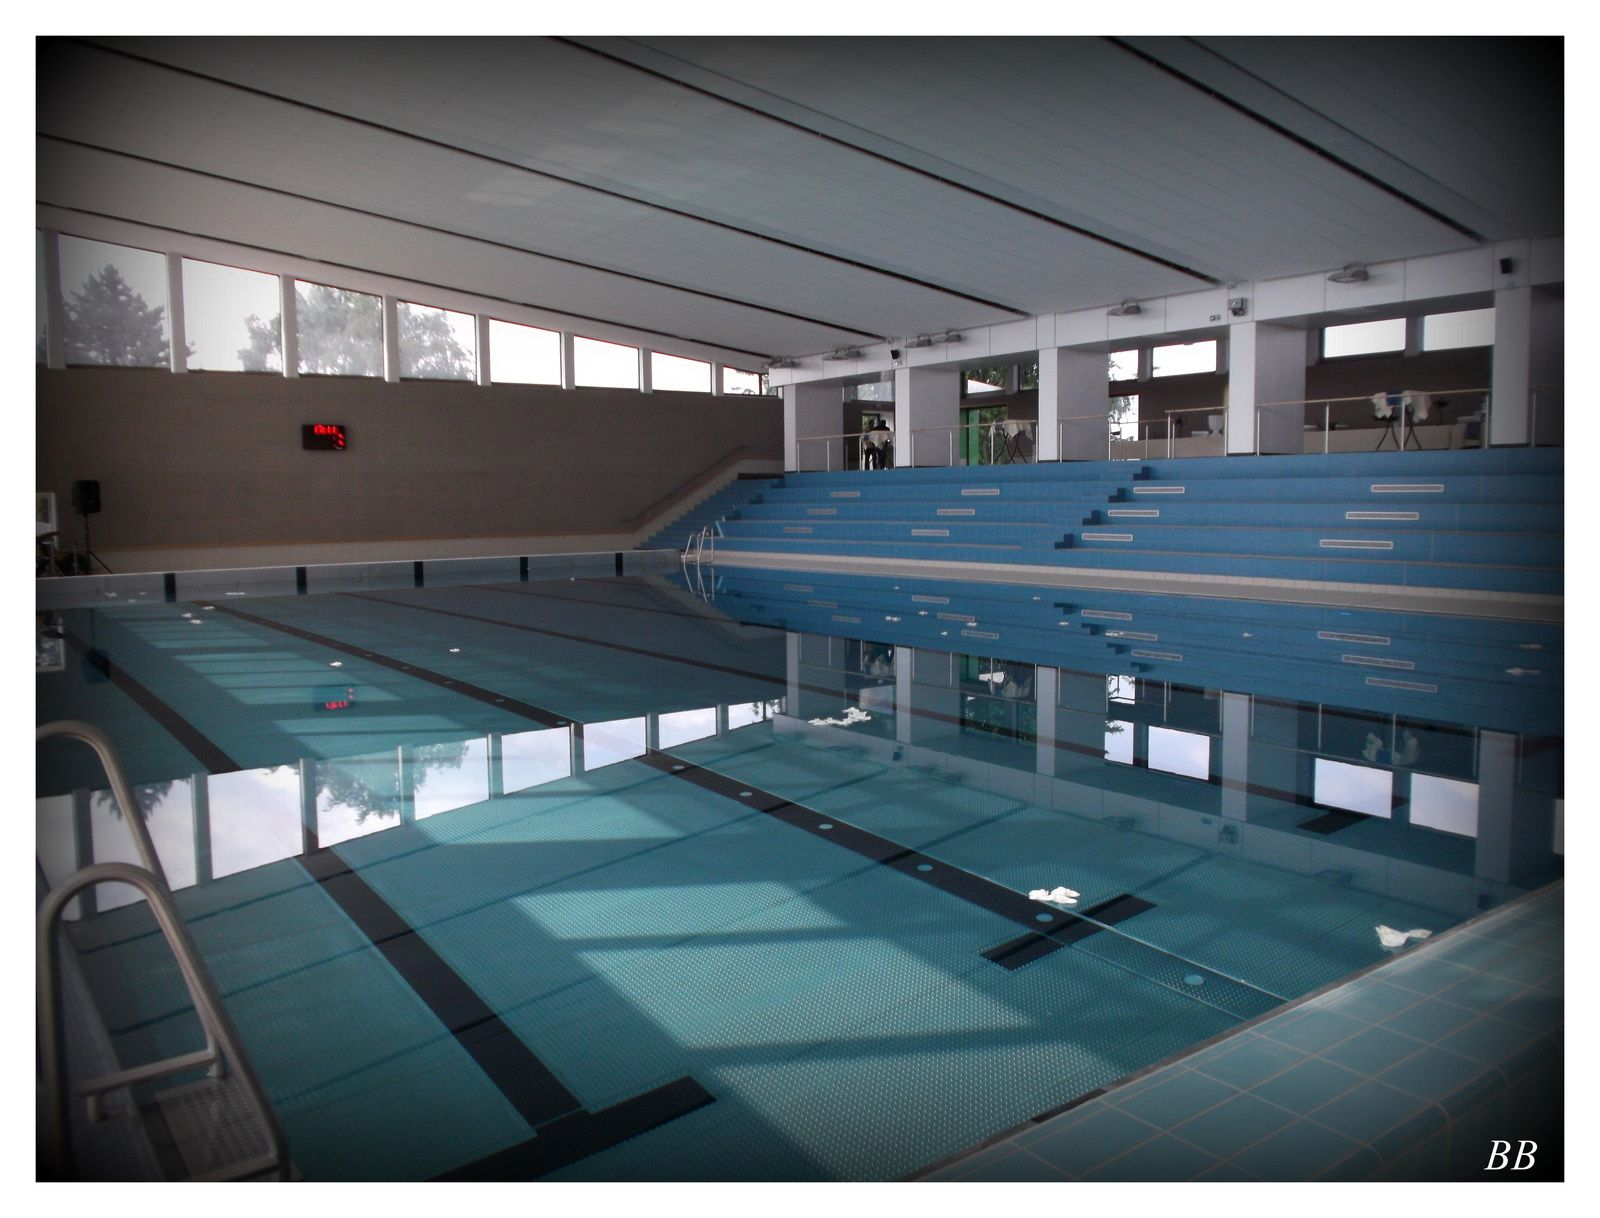 Piscine belletanche metz tarif cycle natation l cole for Piscine tarif